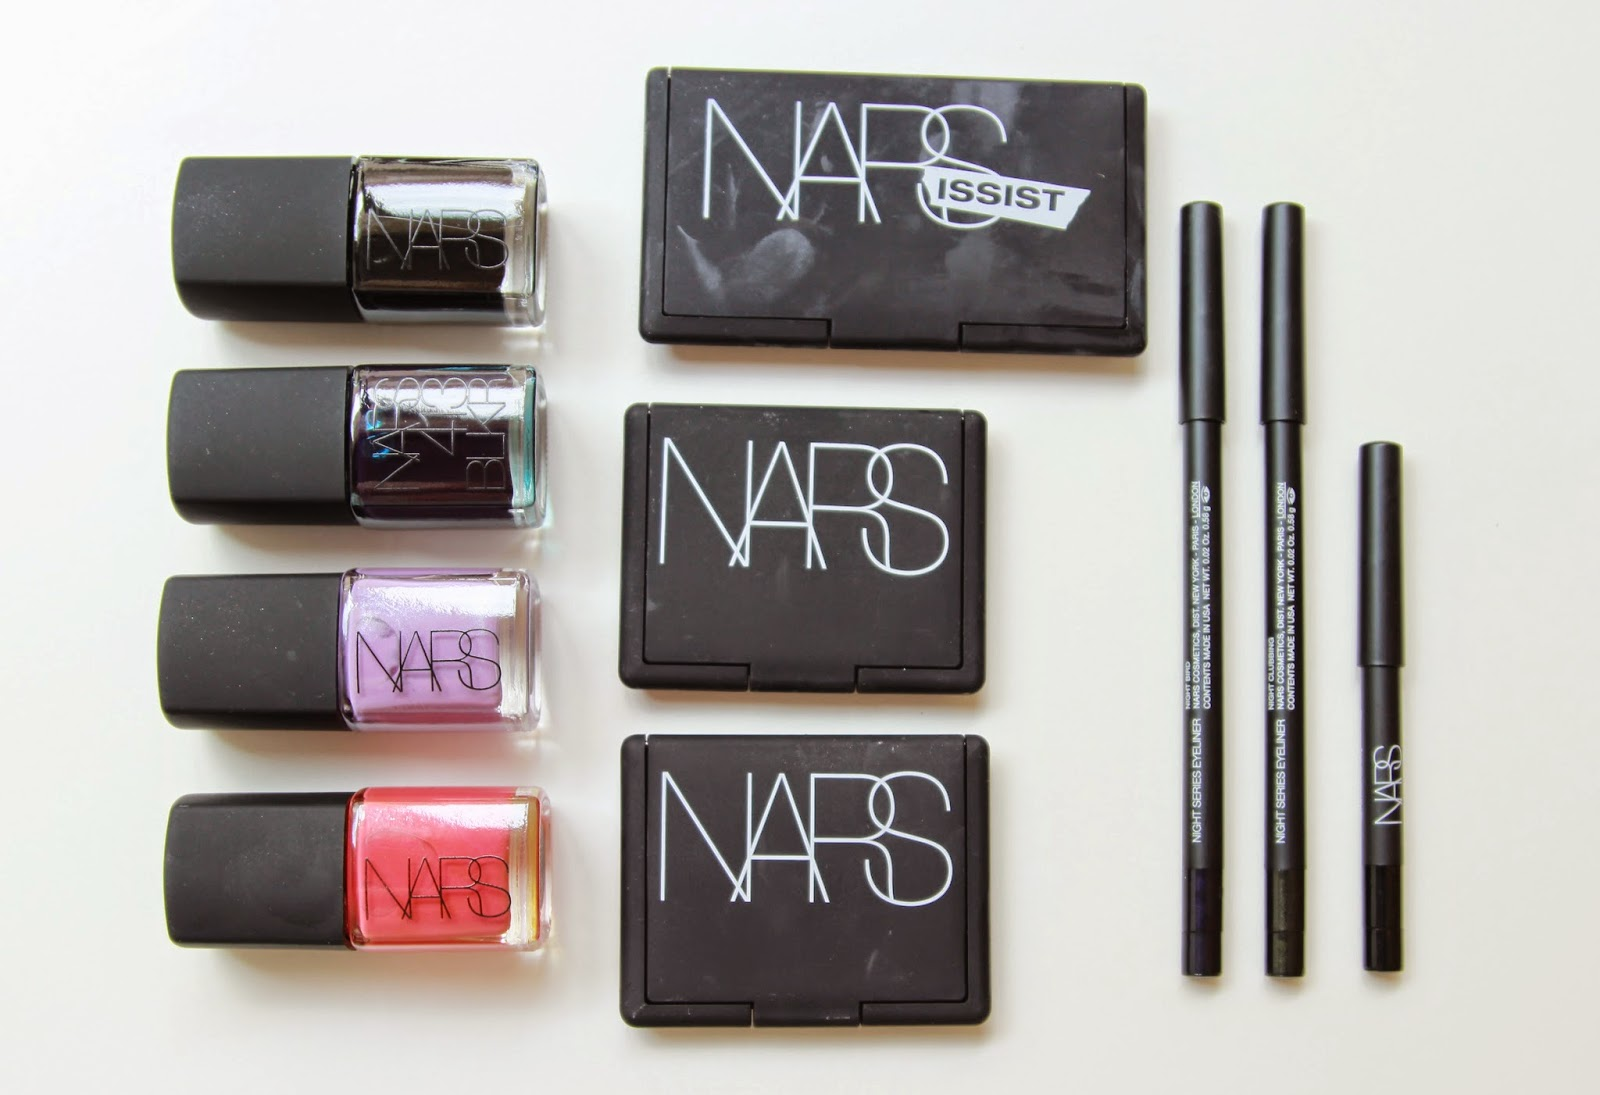 NARS new products